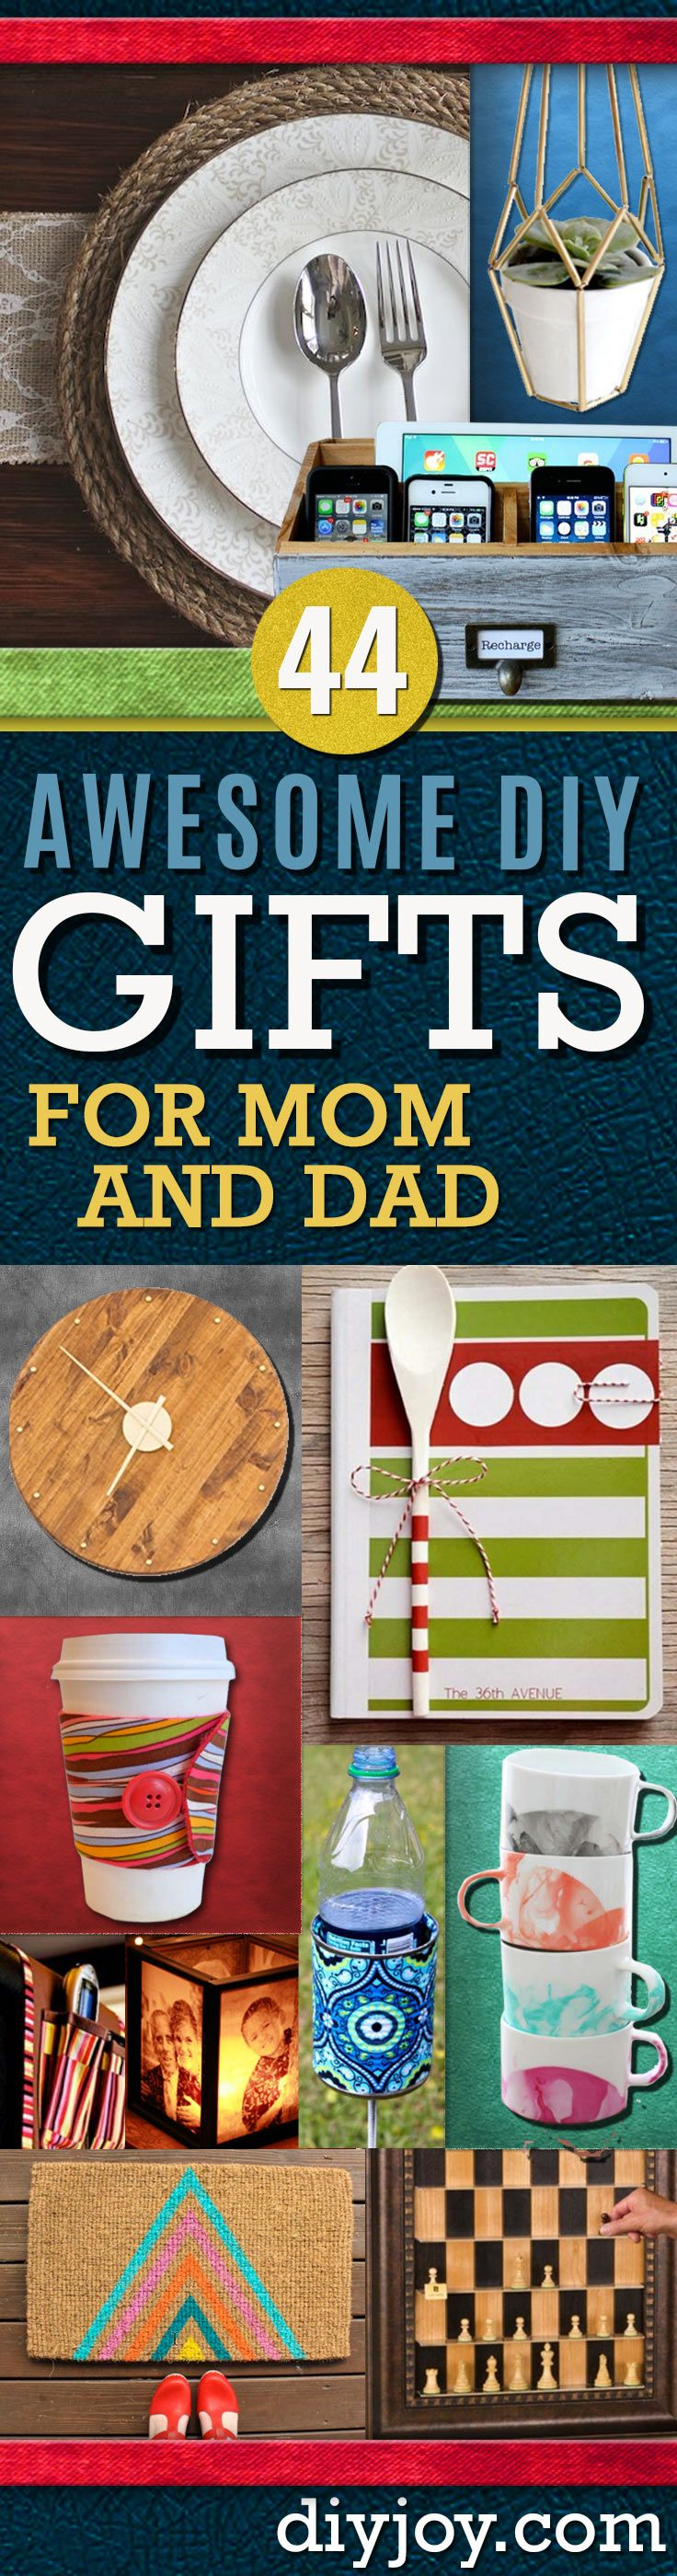 Awesome diy gift ideas mom and dad will love homemade Christmas ideas for your mom